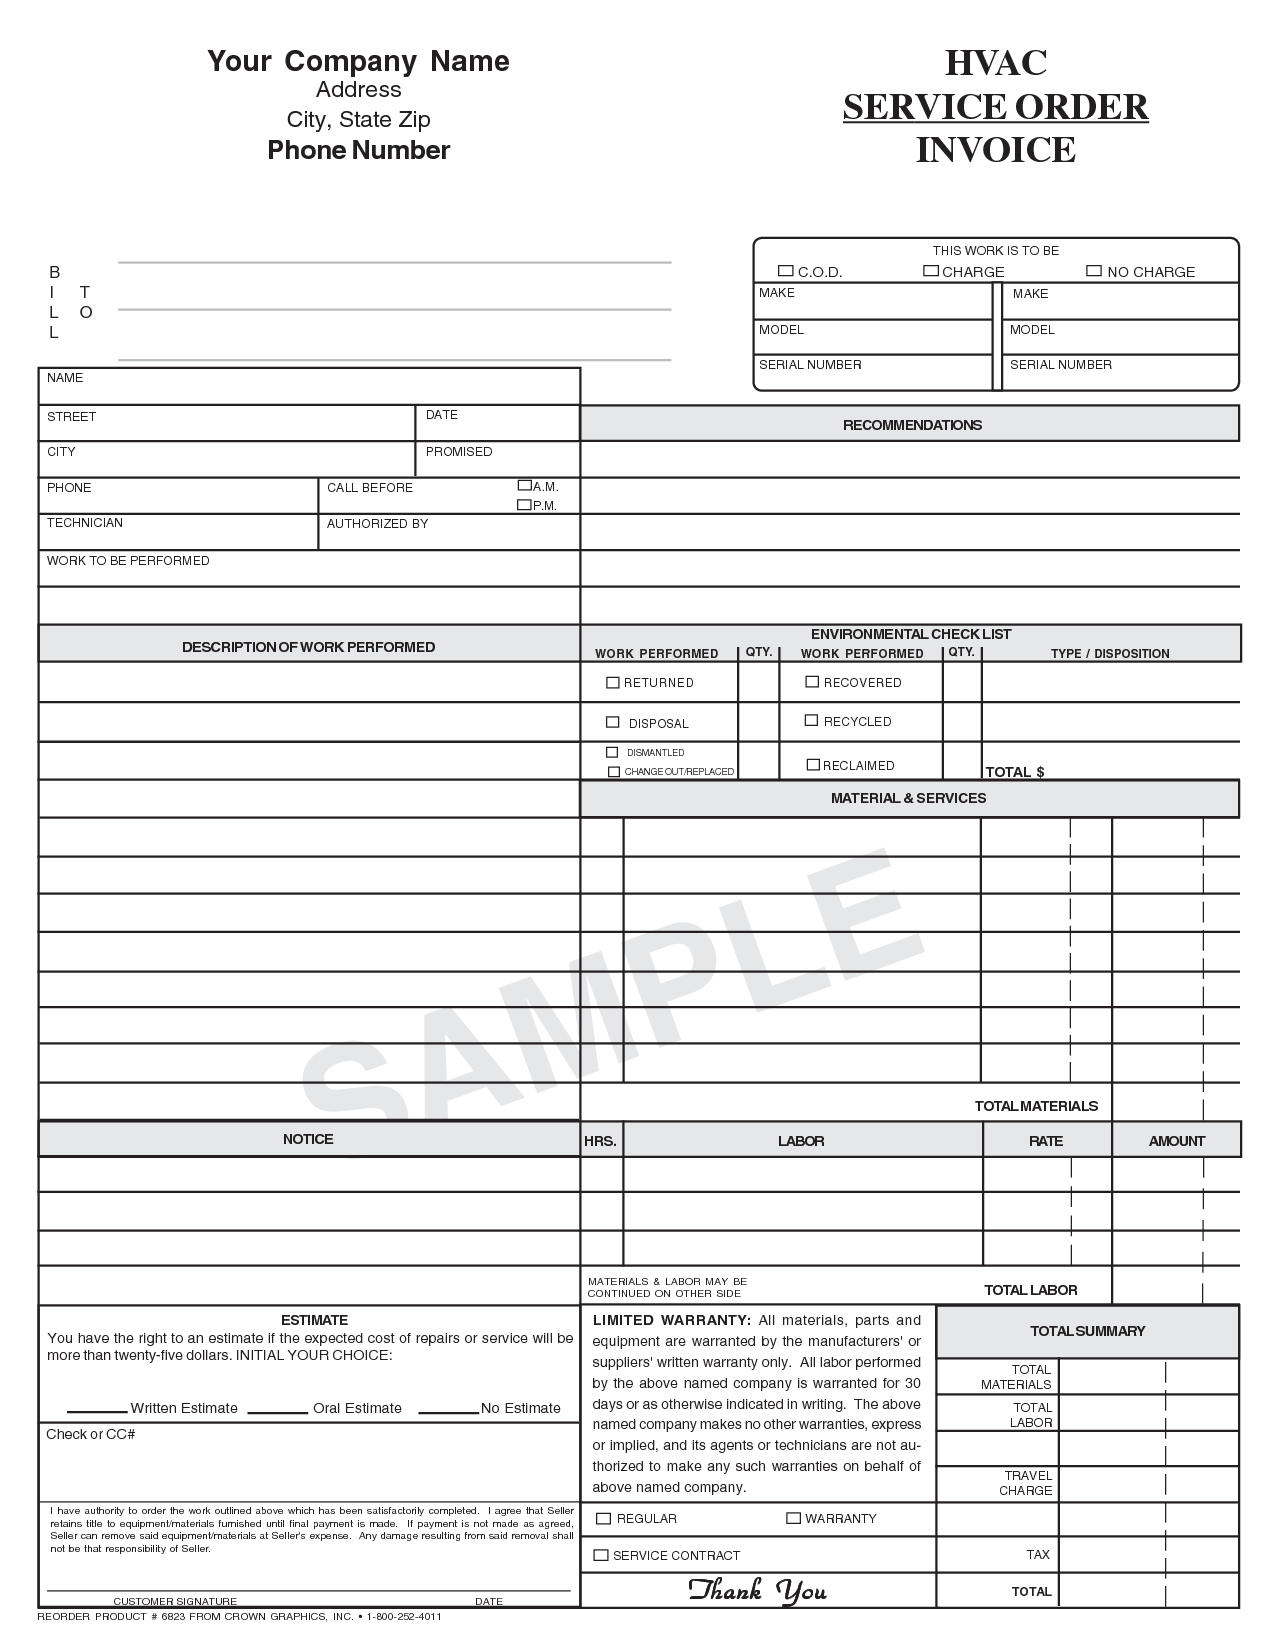 Express Invoice Free Download Excel Hvac Invoice Template  Invoice Example What Are Invoices In Business Pdf with Free Online Receipts Hvac Invoice Template Hvac Service Order Invoice Template Fjnzxe Property Tax Receipts Excel